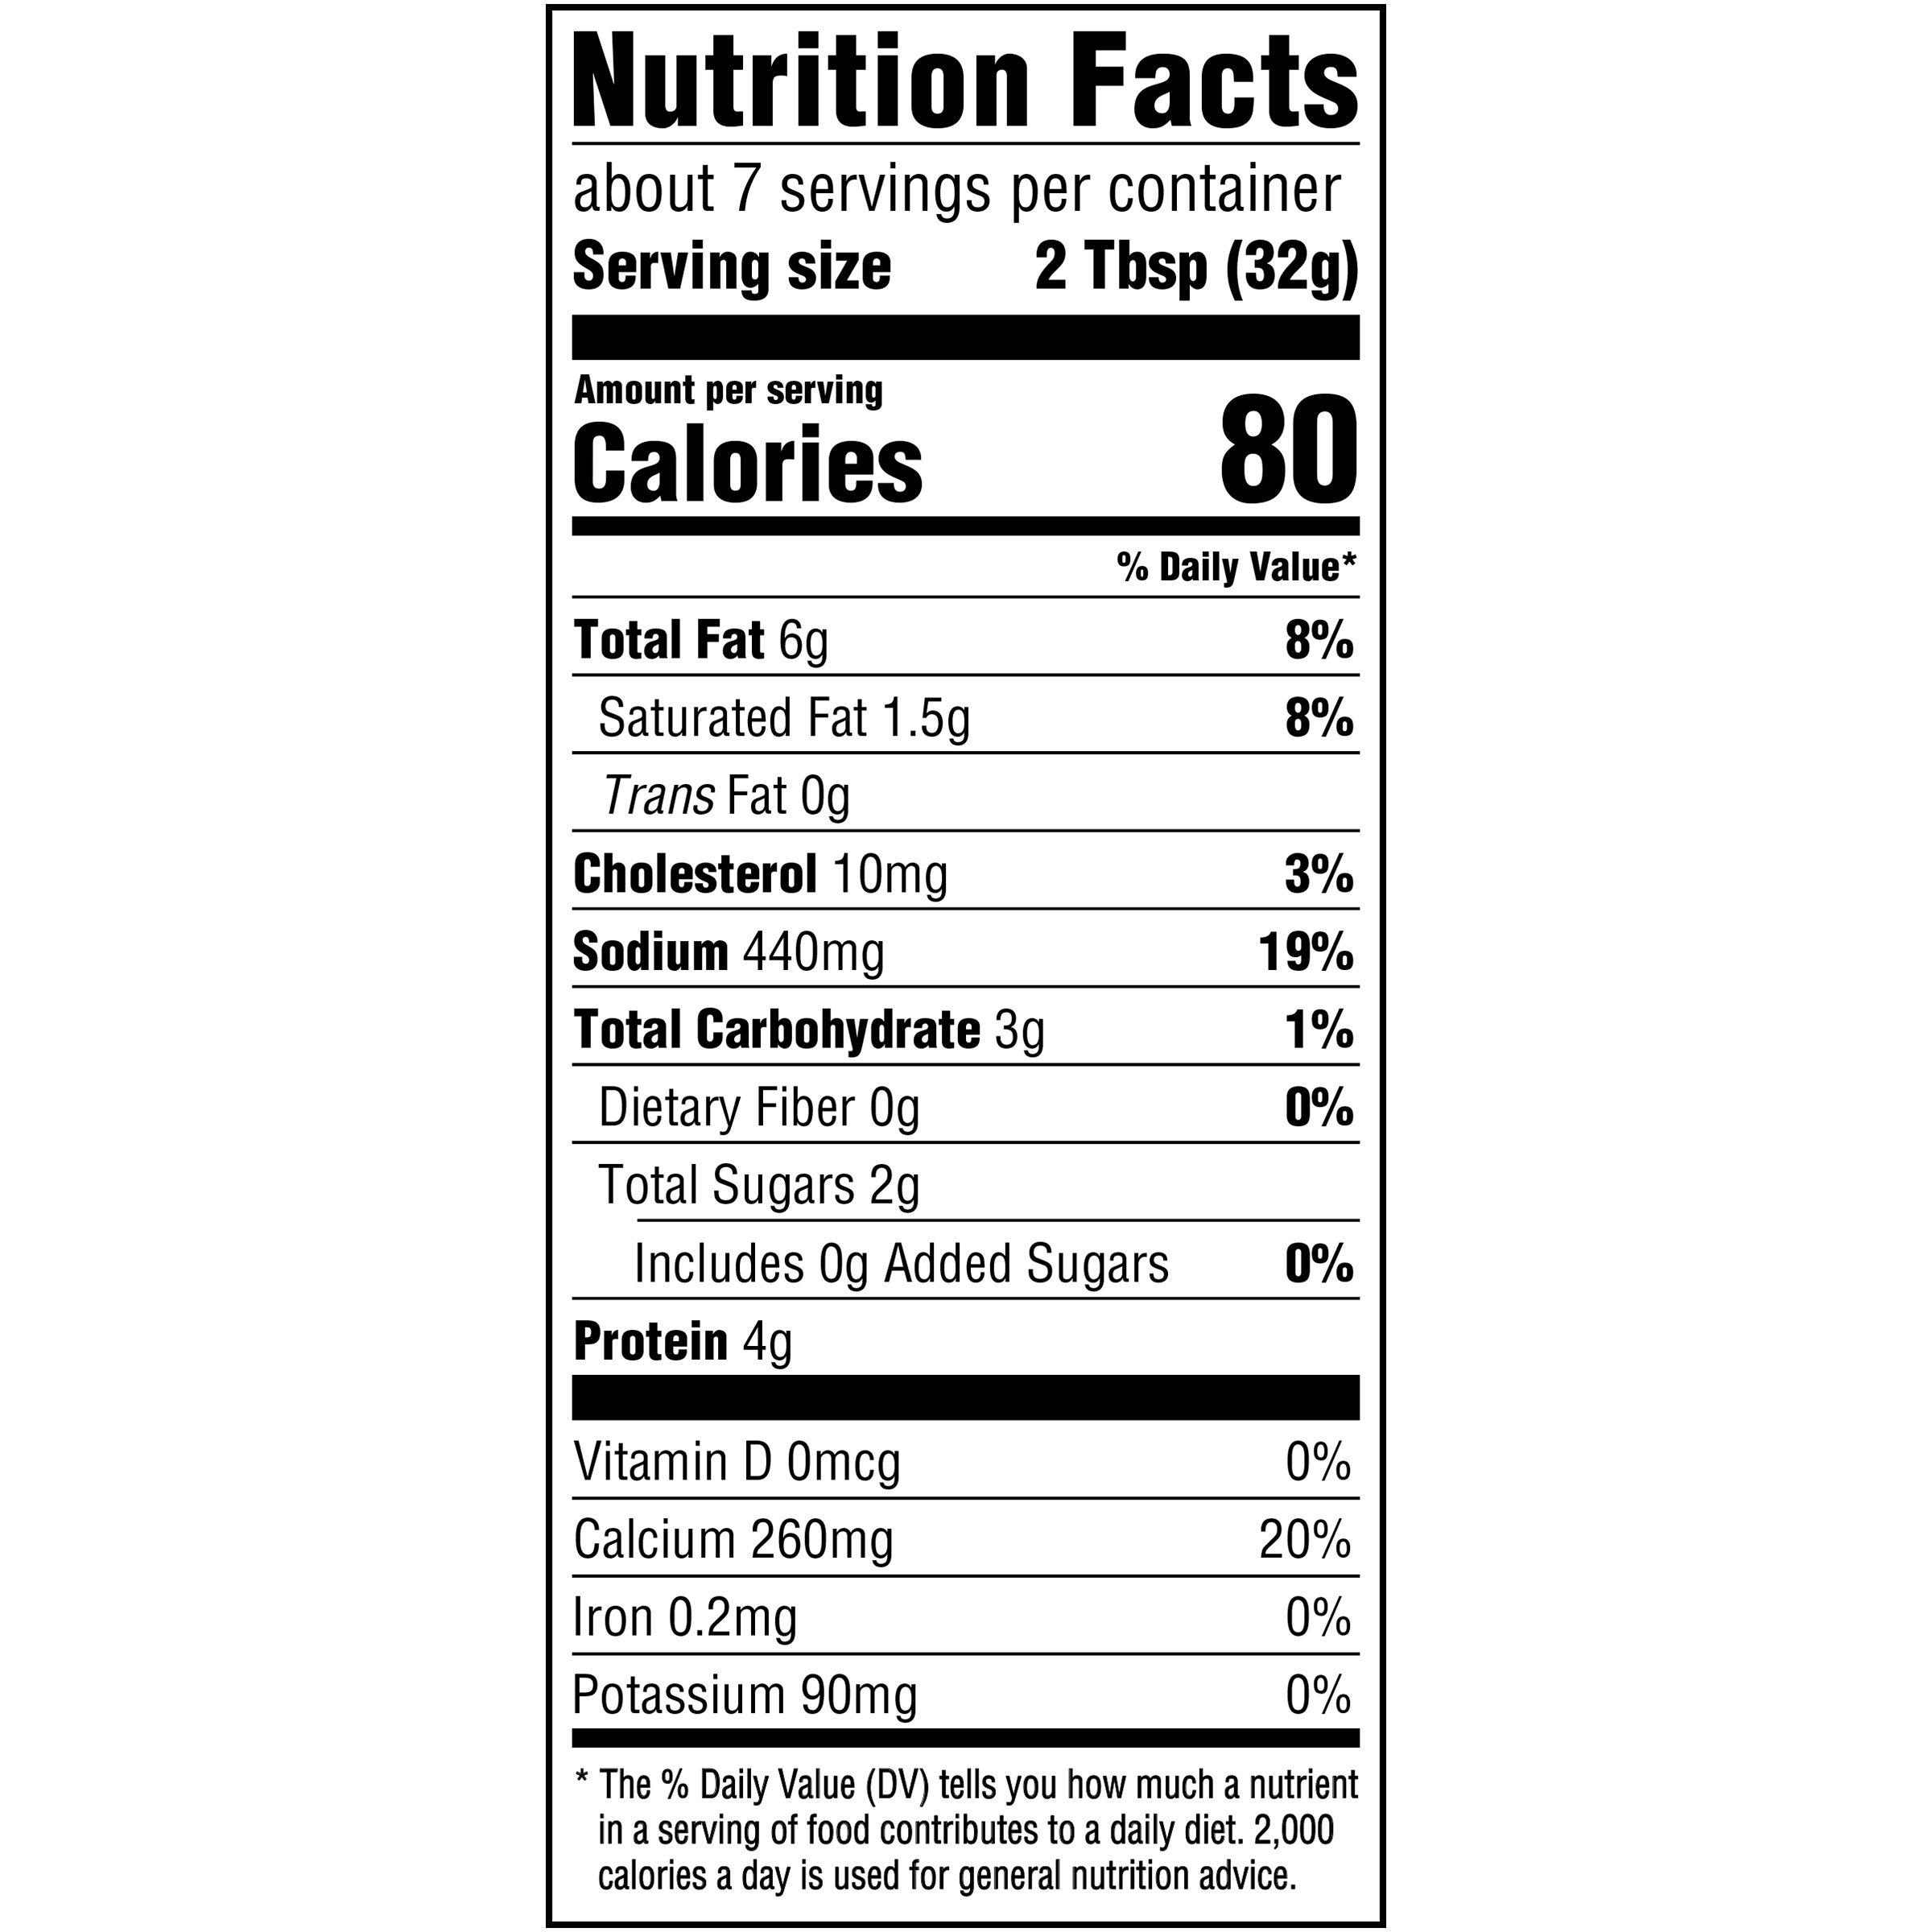 <%=lblProductName.InnerText %> Nutrition Fact Big